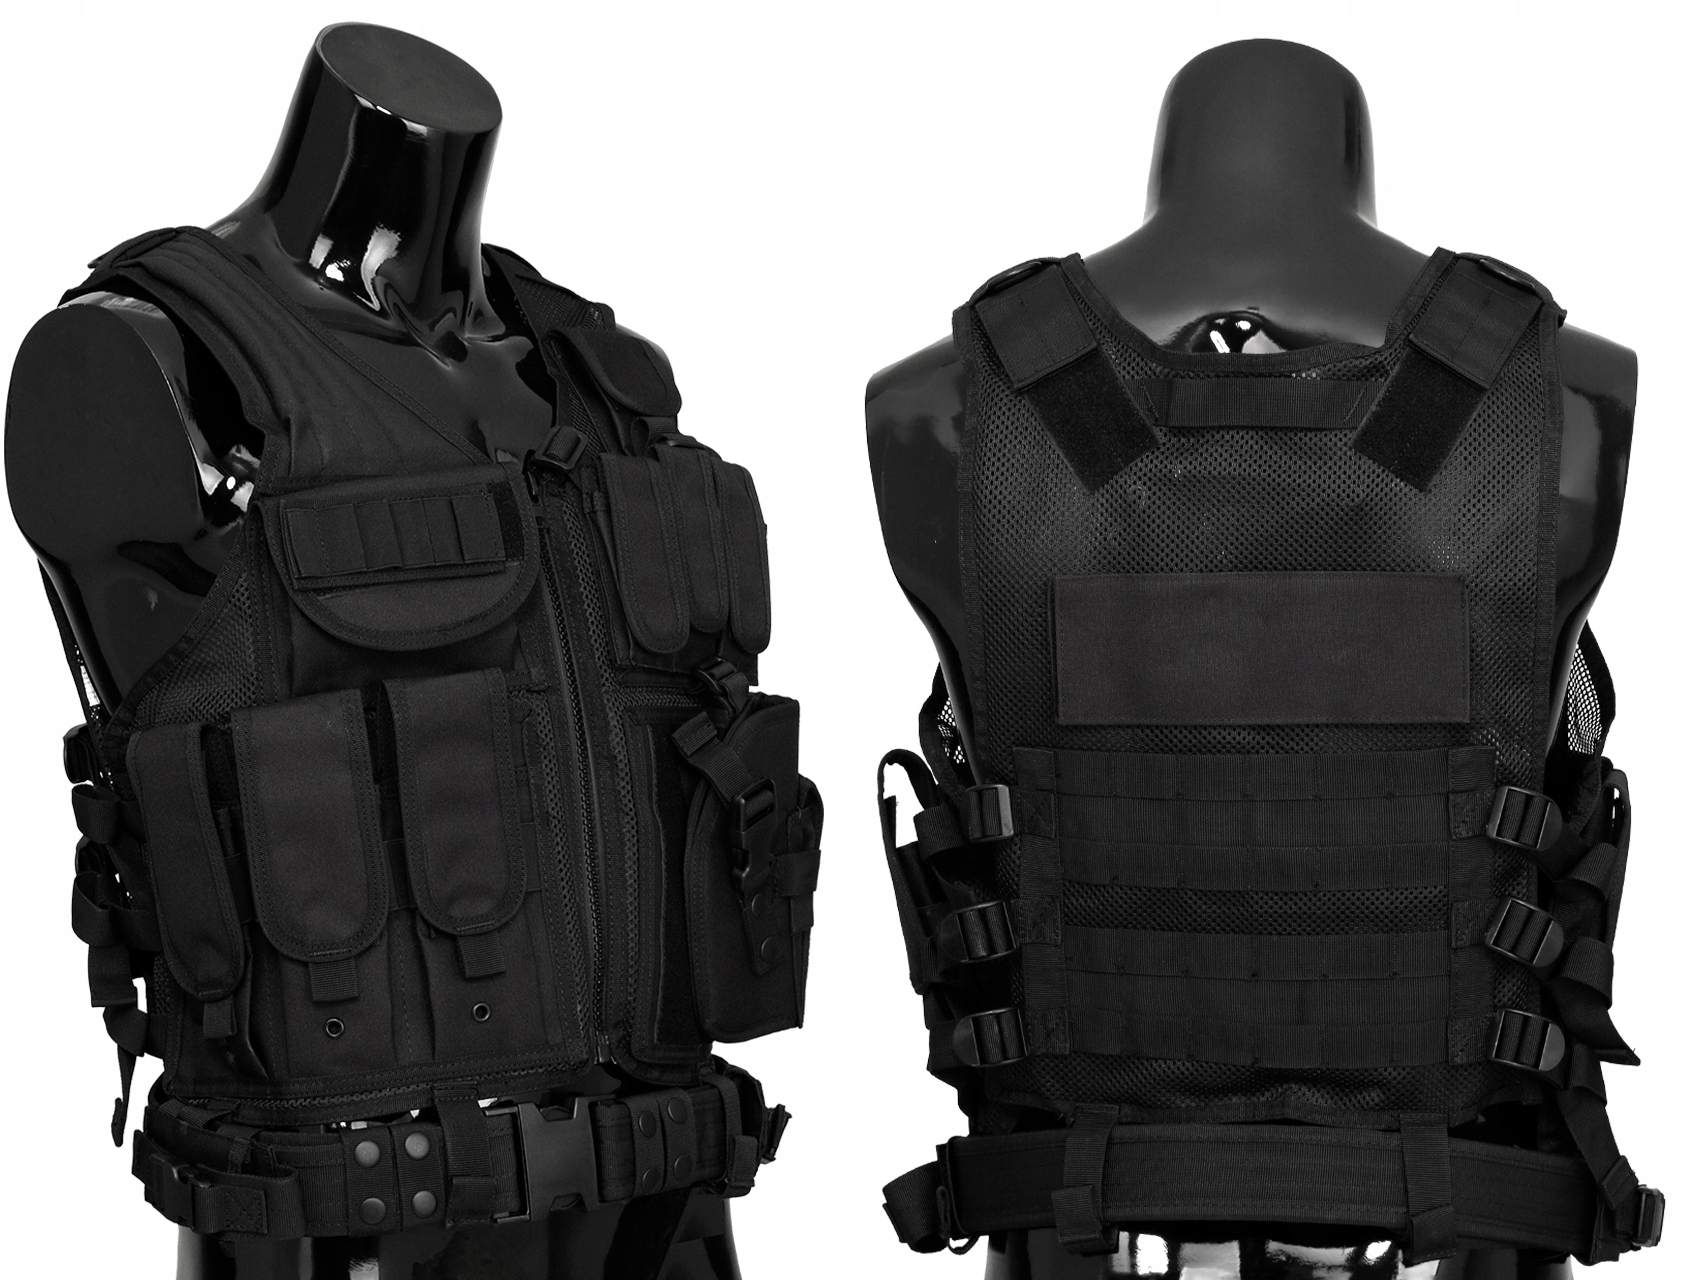 Item VEST Tactical GUZAR PROTECTION of the POLICE CONVOYS